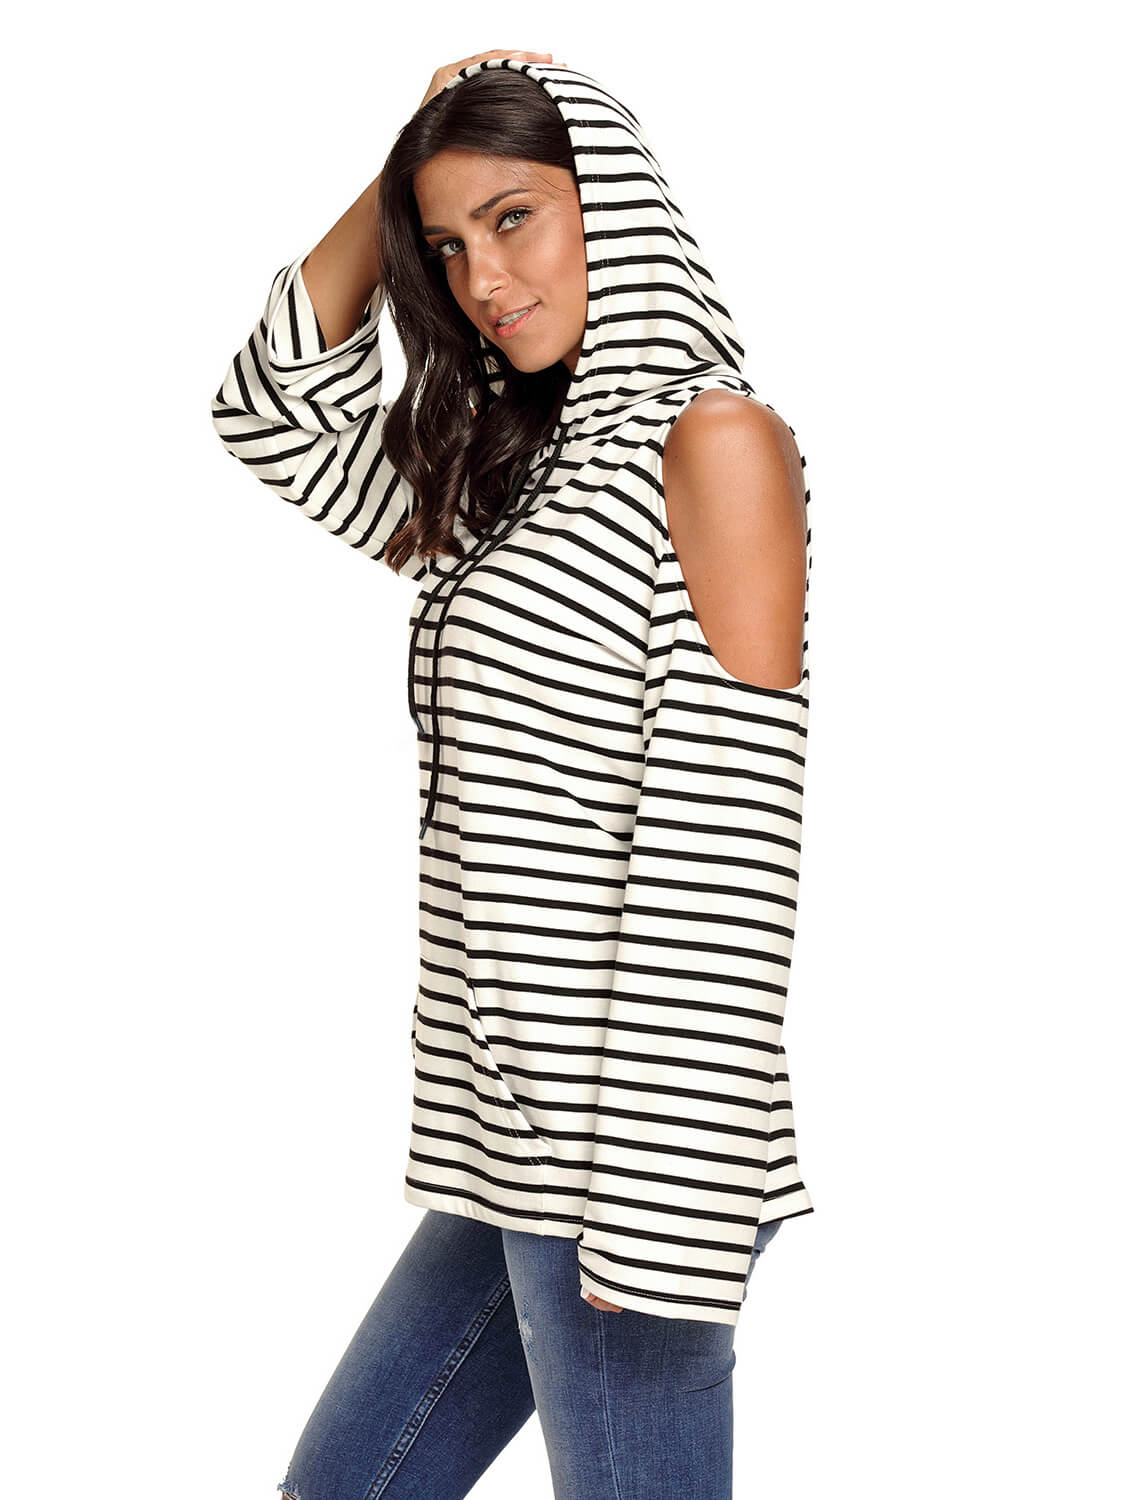 7ecfecc1adc55 Black White Striped Cold Shoulder Long Sleeve Top – WhatsMode